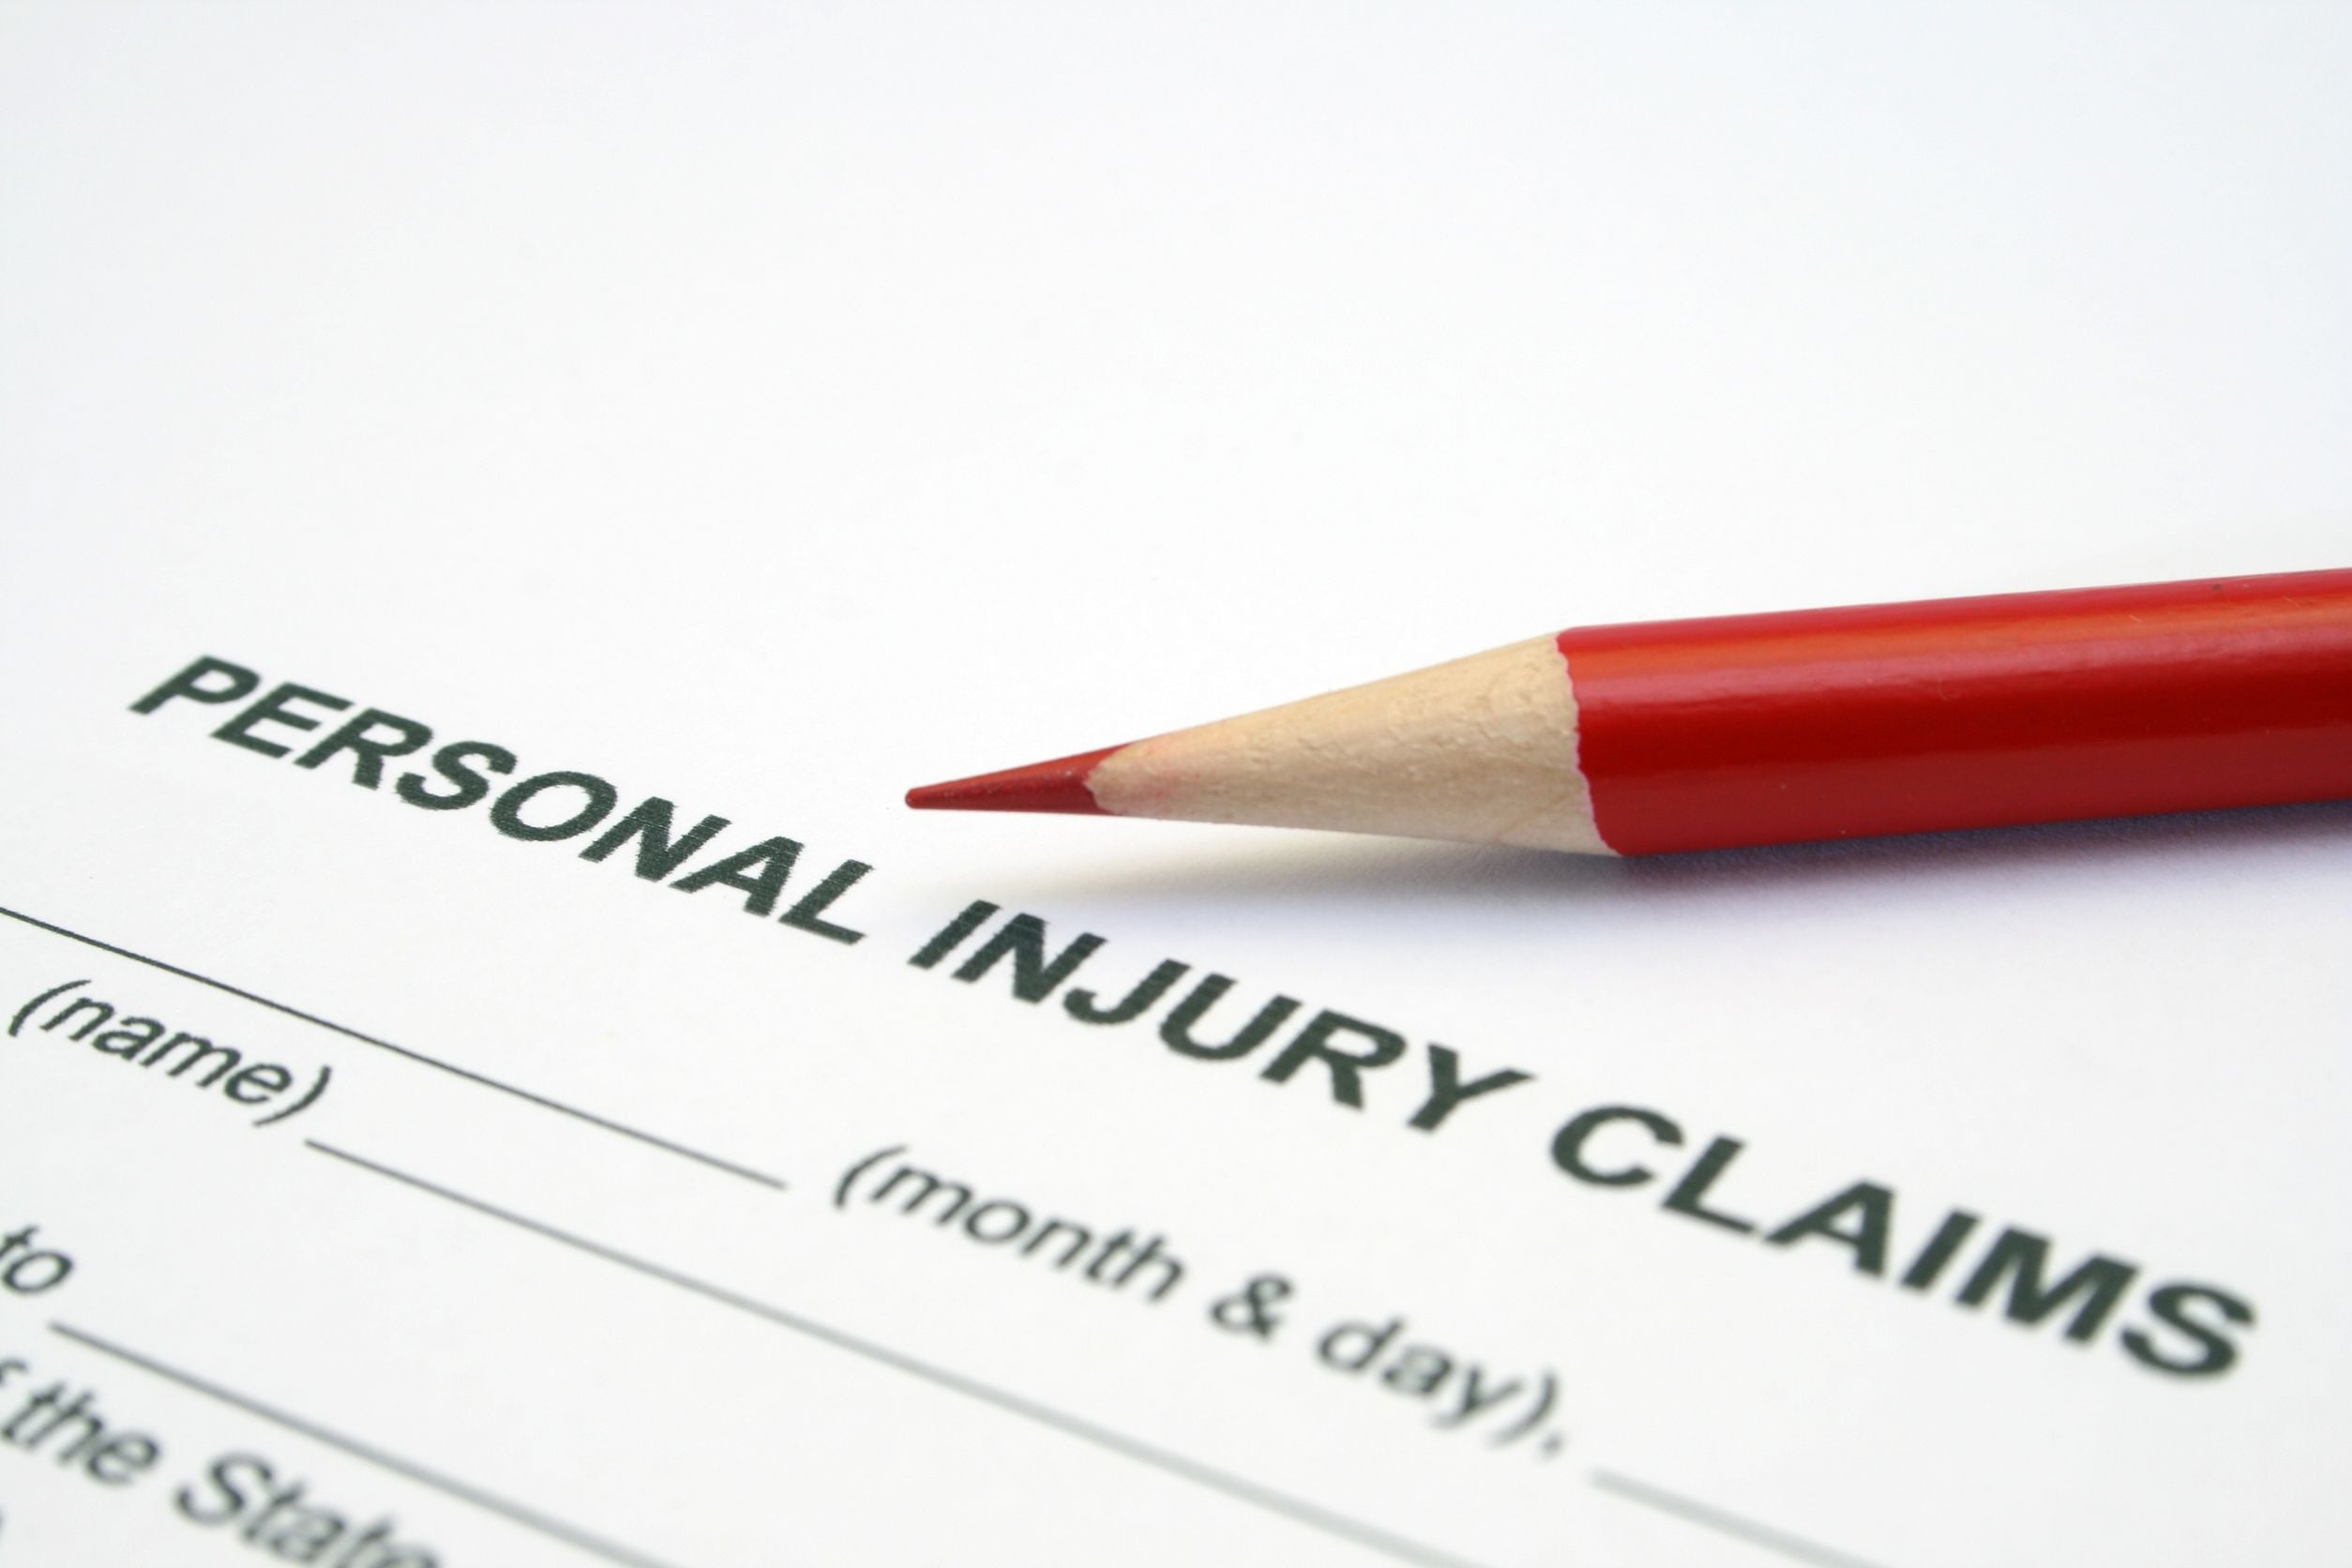 What to Know about the Florida Crimes Compensation Act